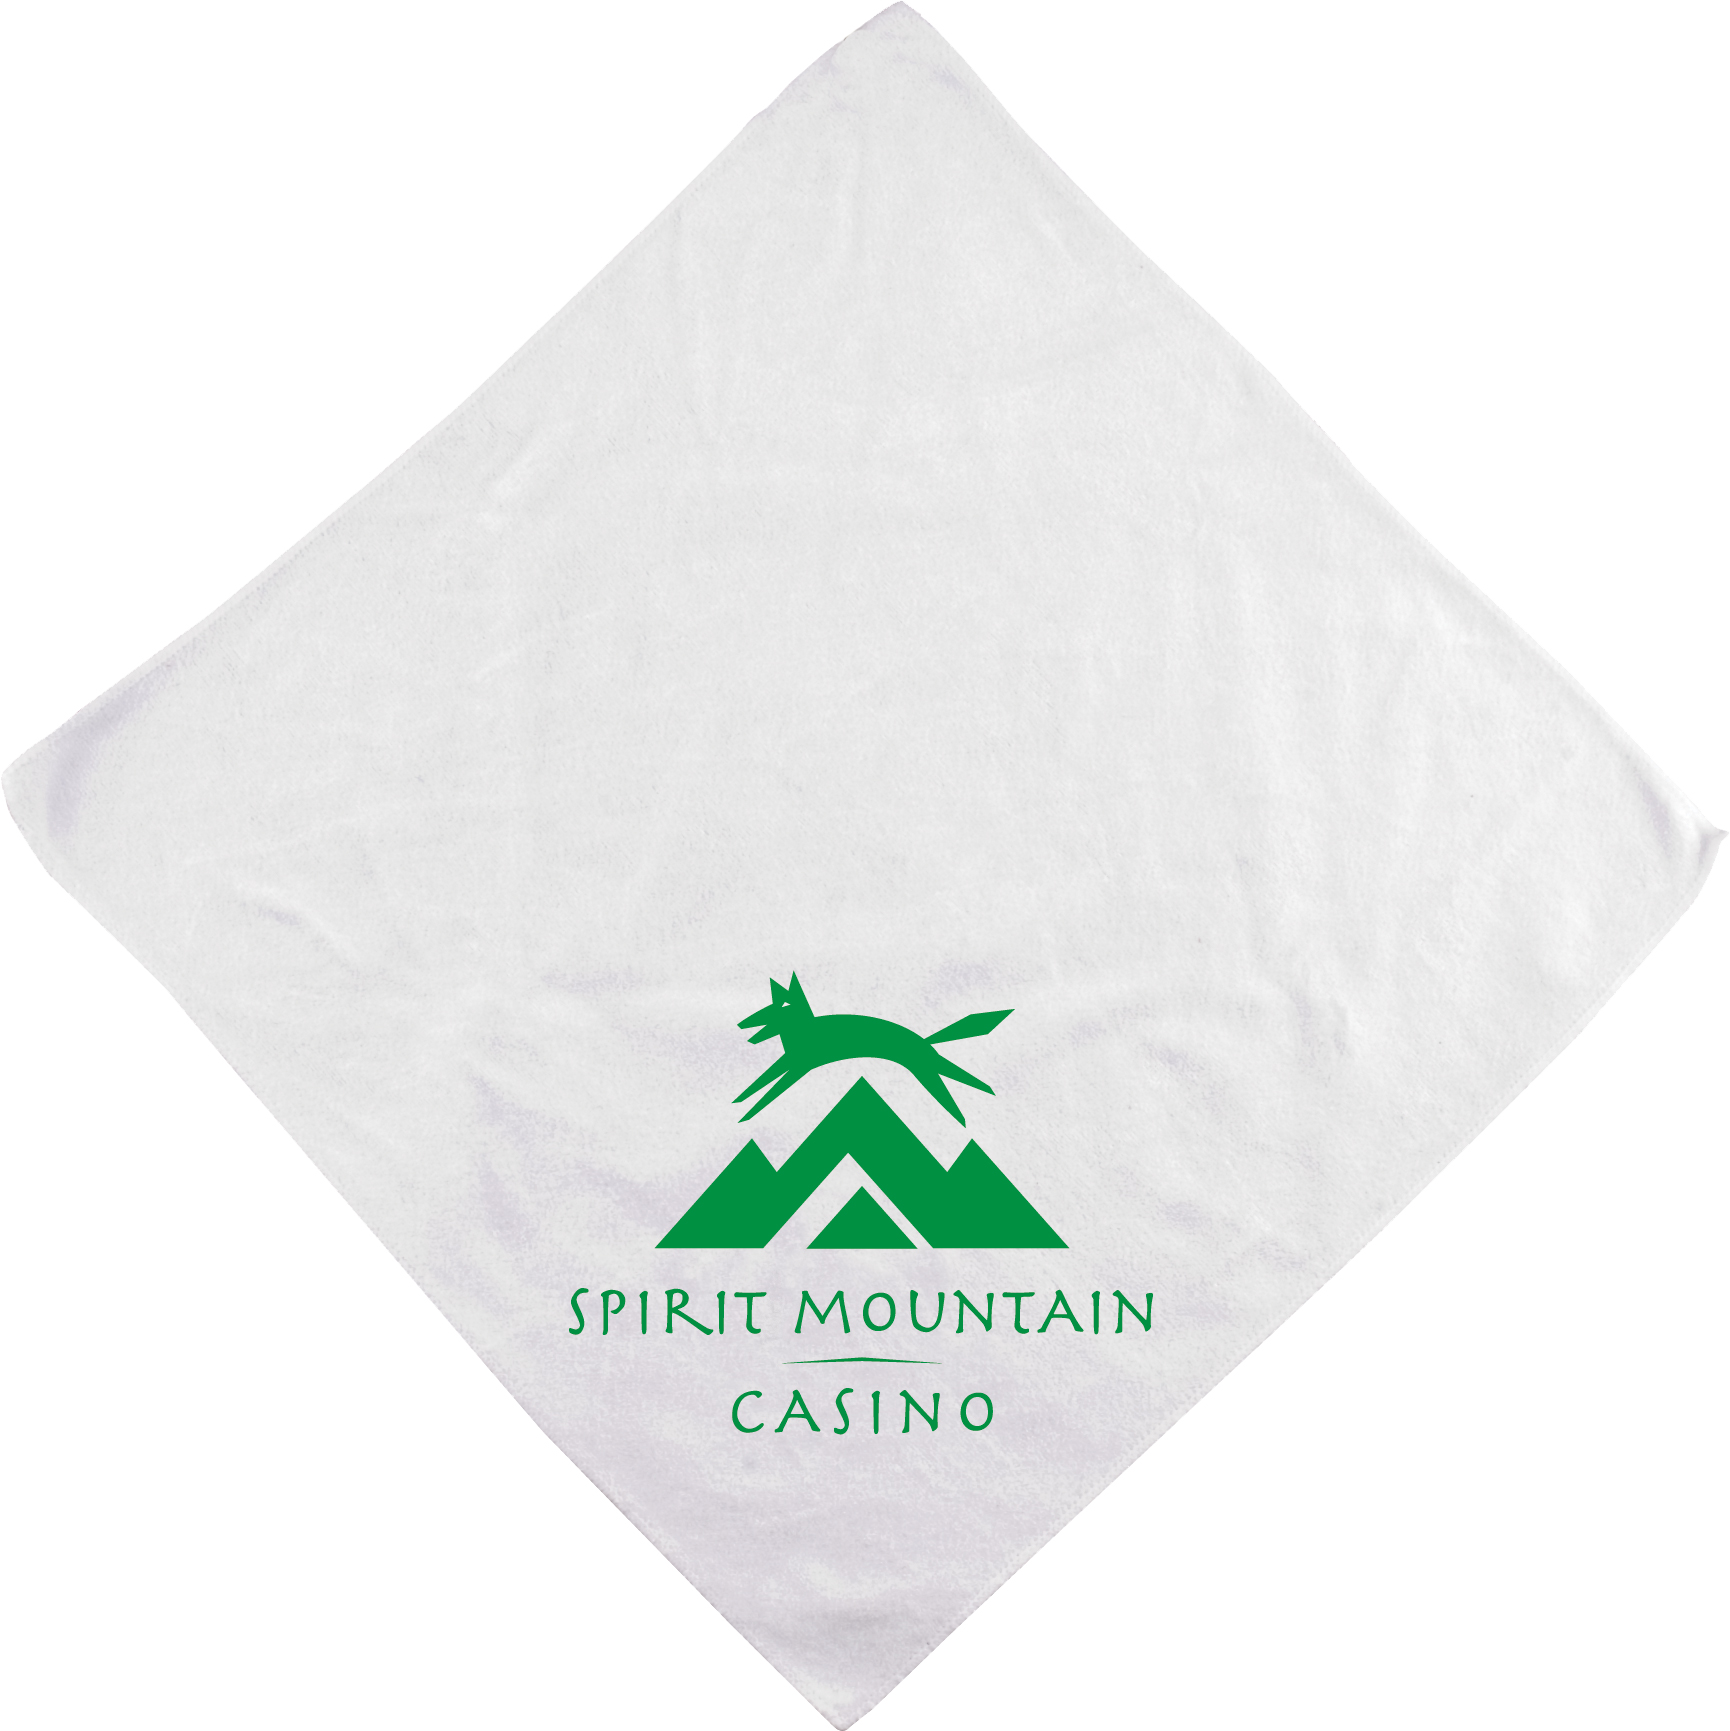 "16"" x 16"" White Micorfiber Super Soft Towel"